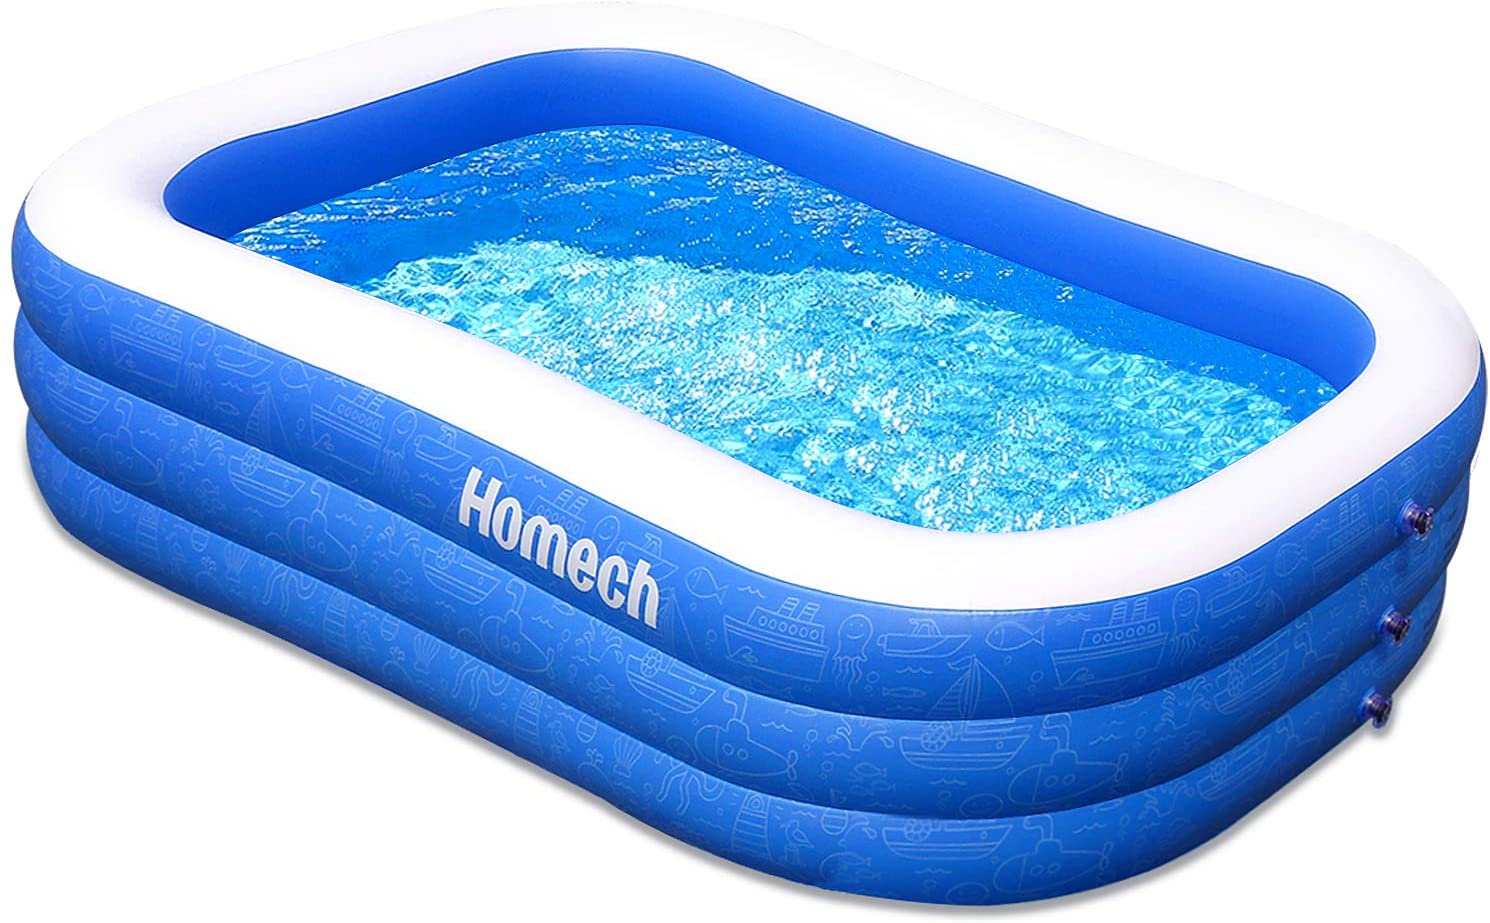 Homech Family Inflatable Pool Image